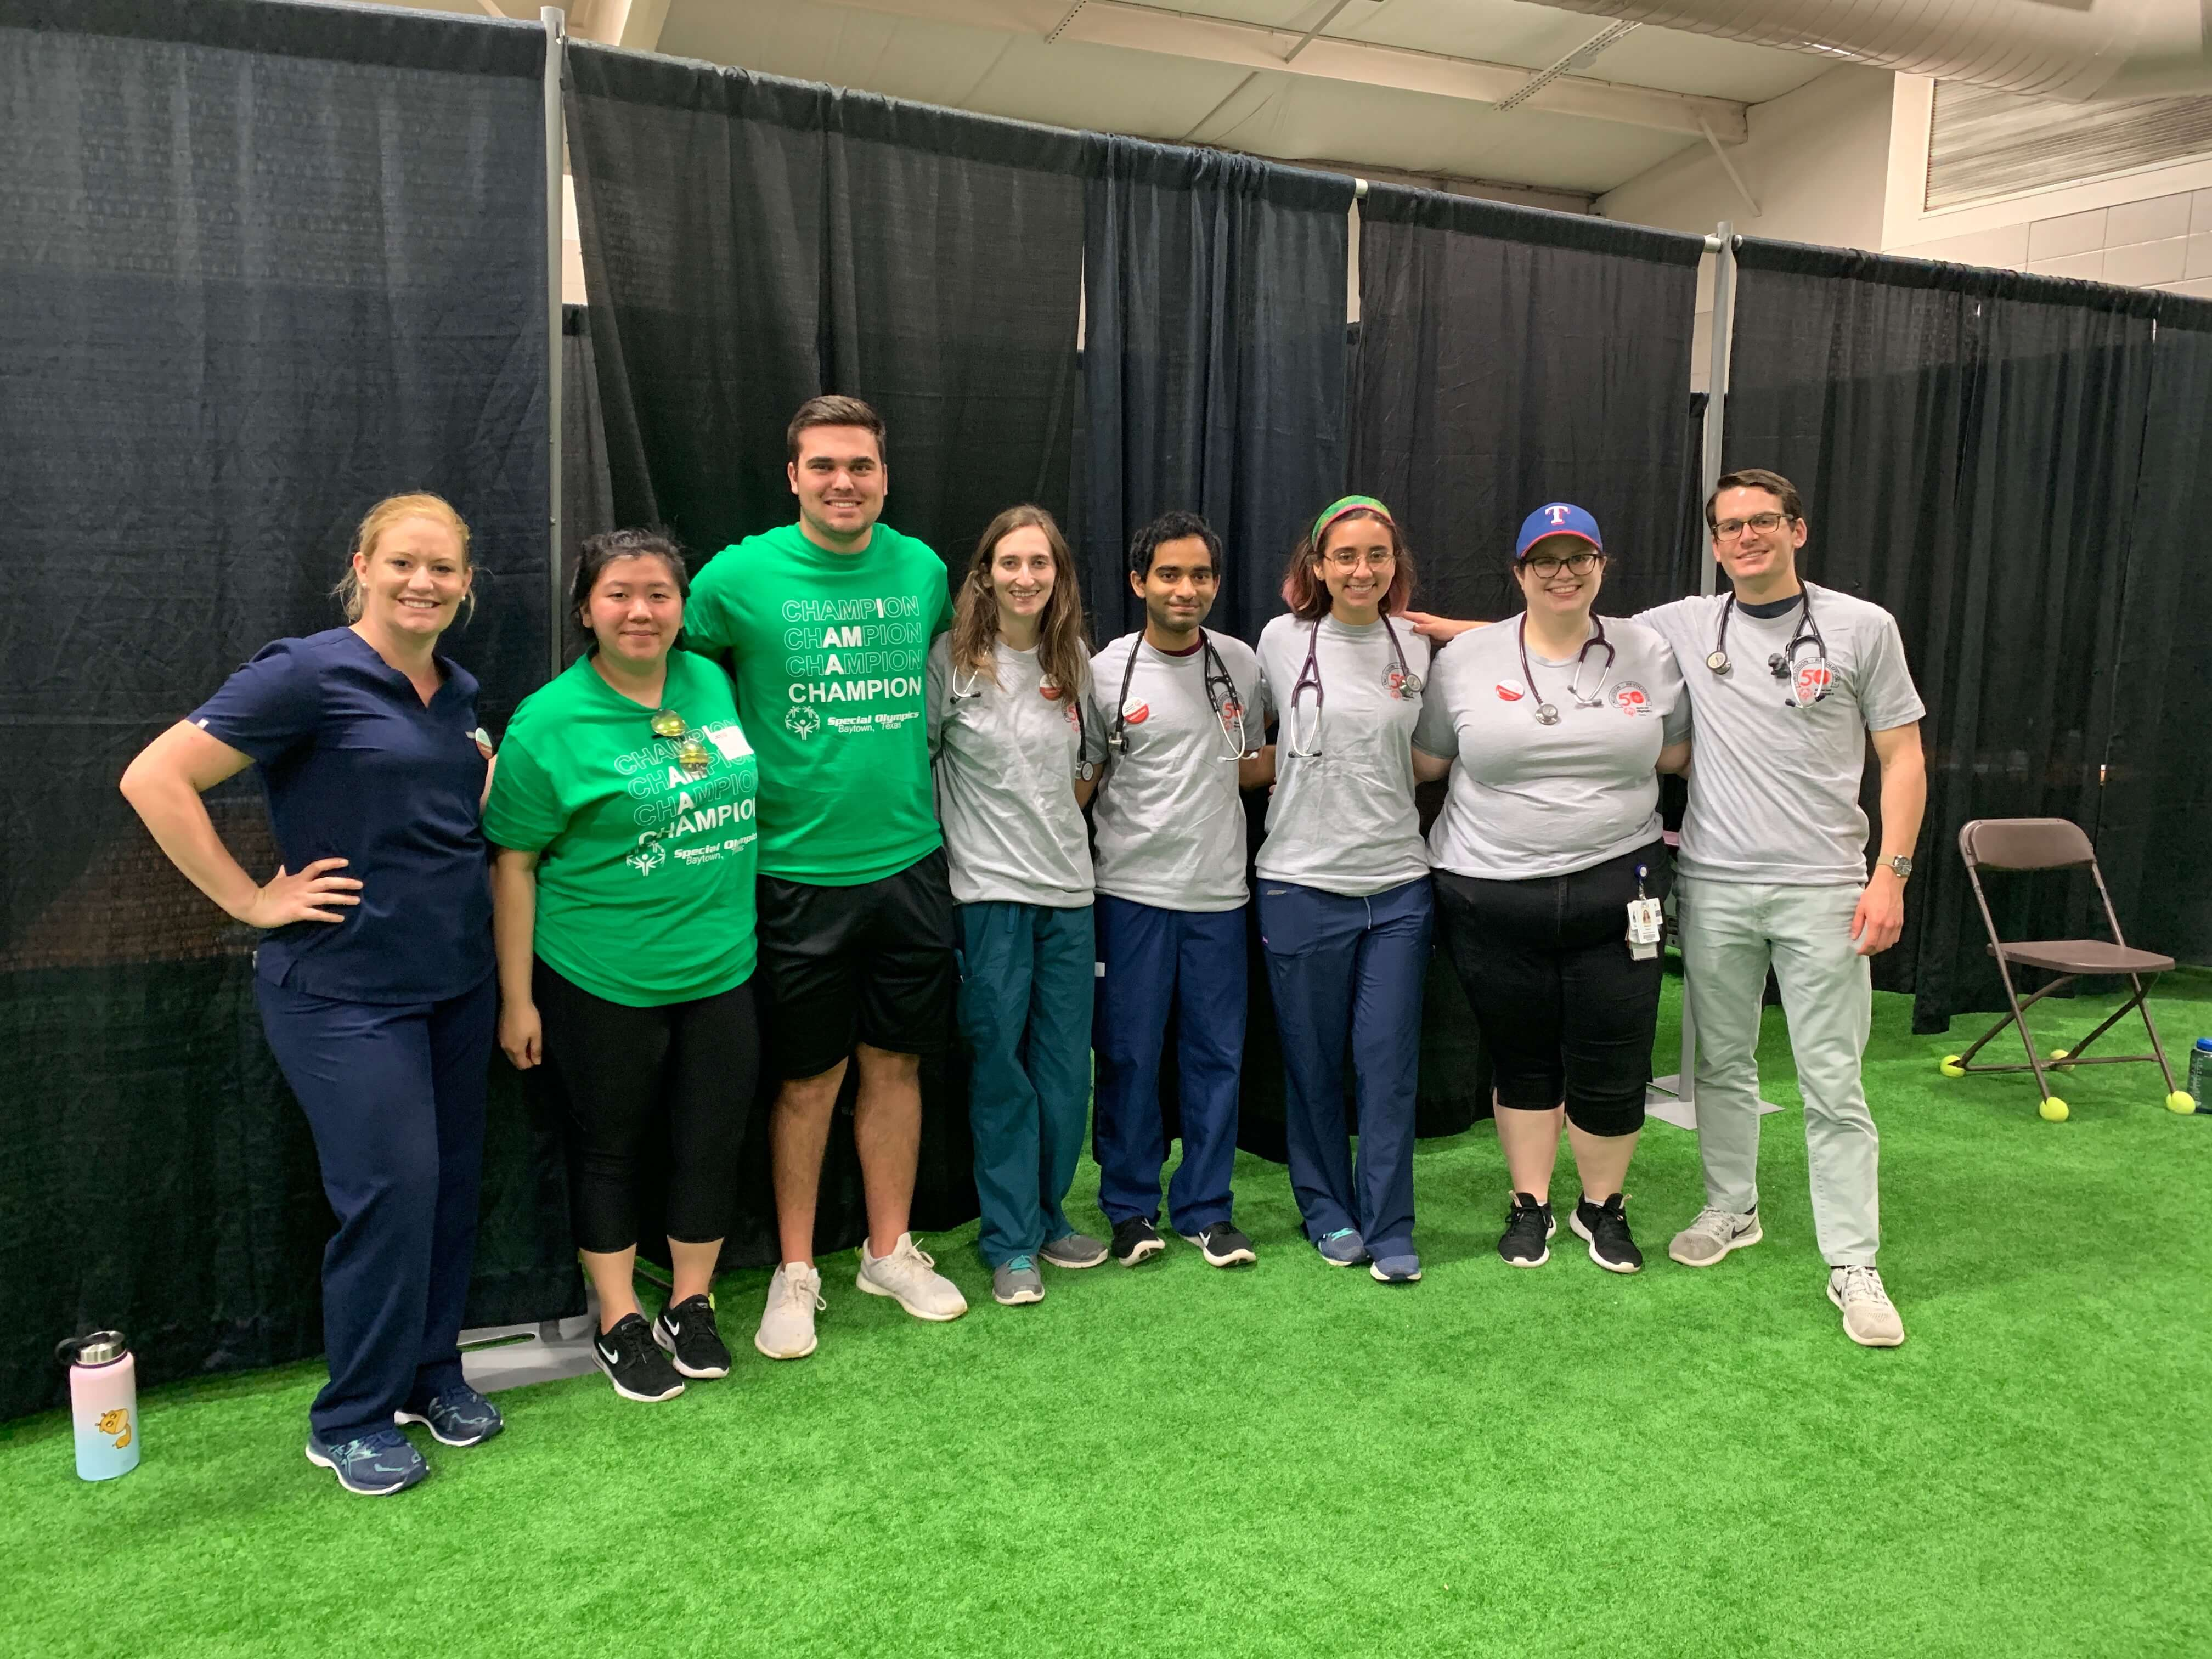 Students from the UTHealth School of Dentistry, the University of Houston and Baylor College of Medicine provided care to the Special Olympics athletes.